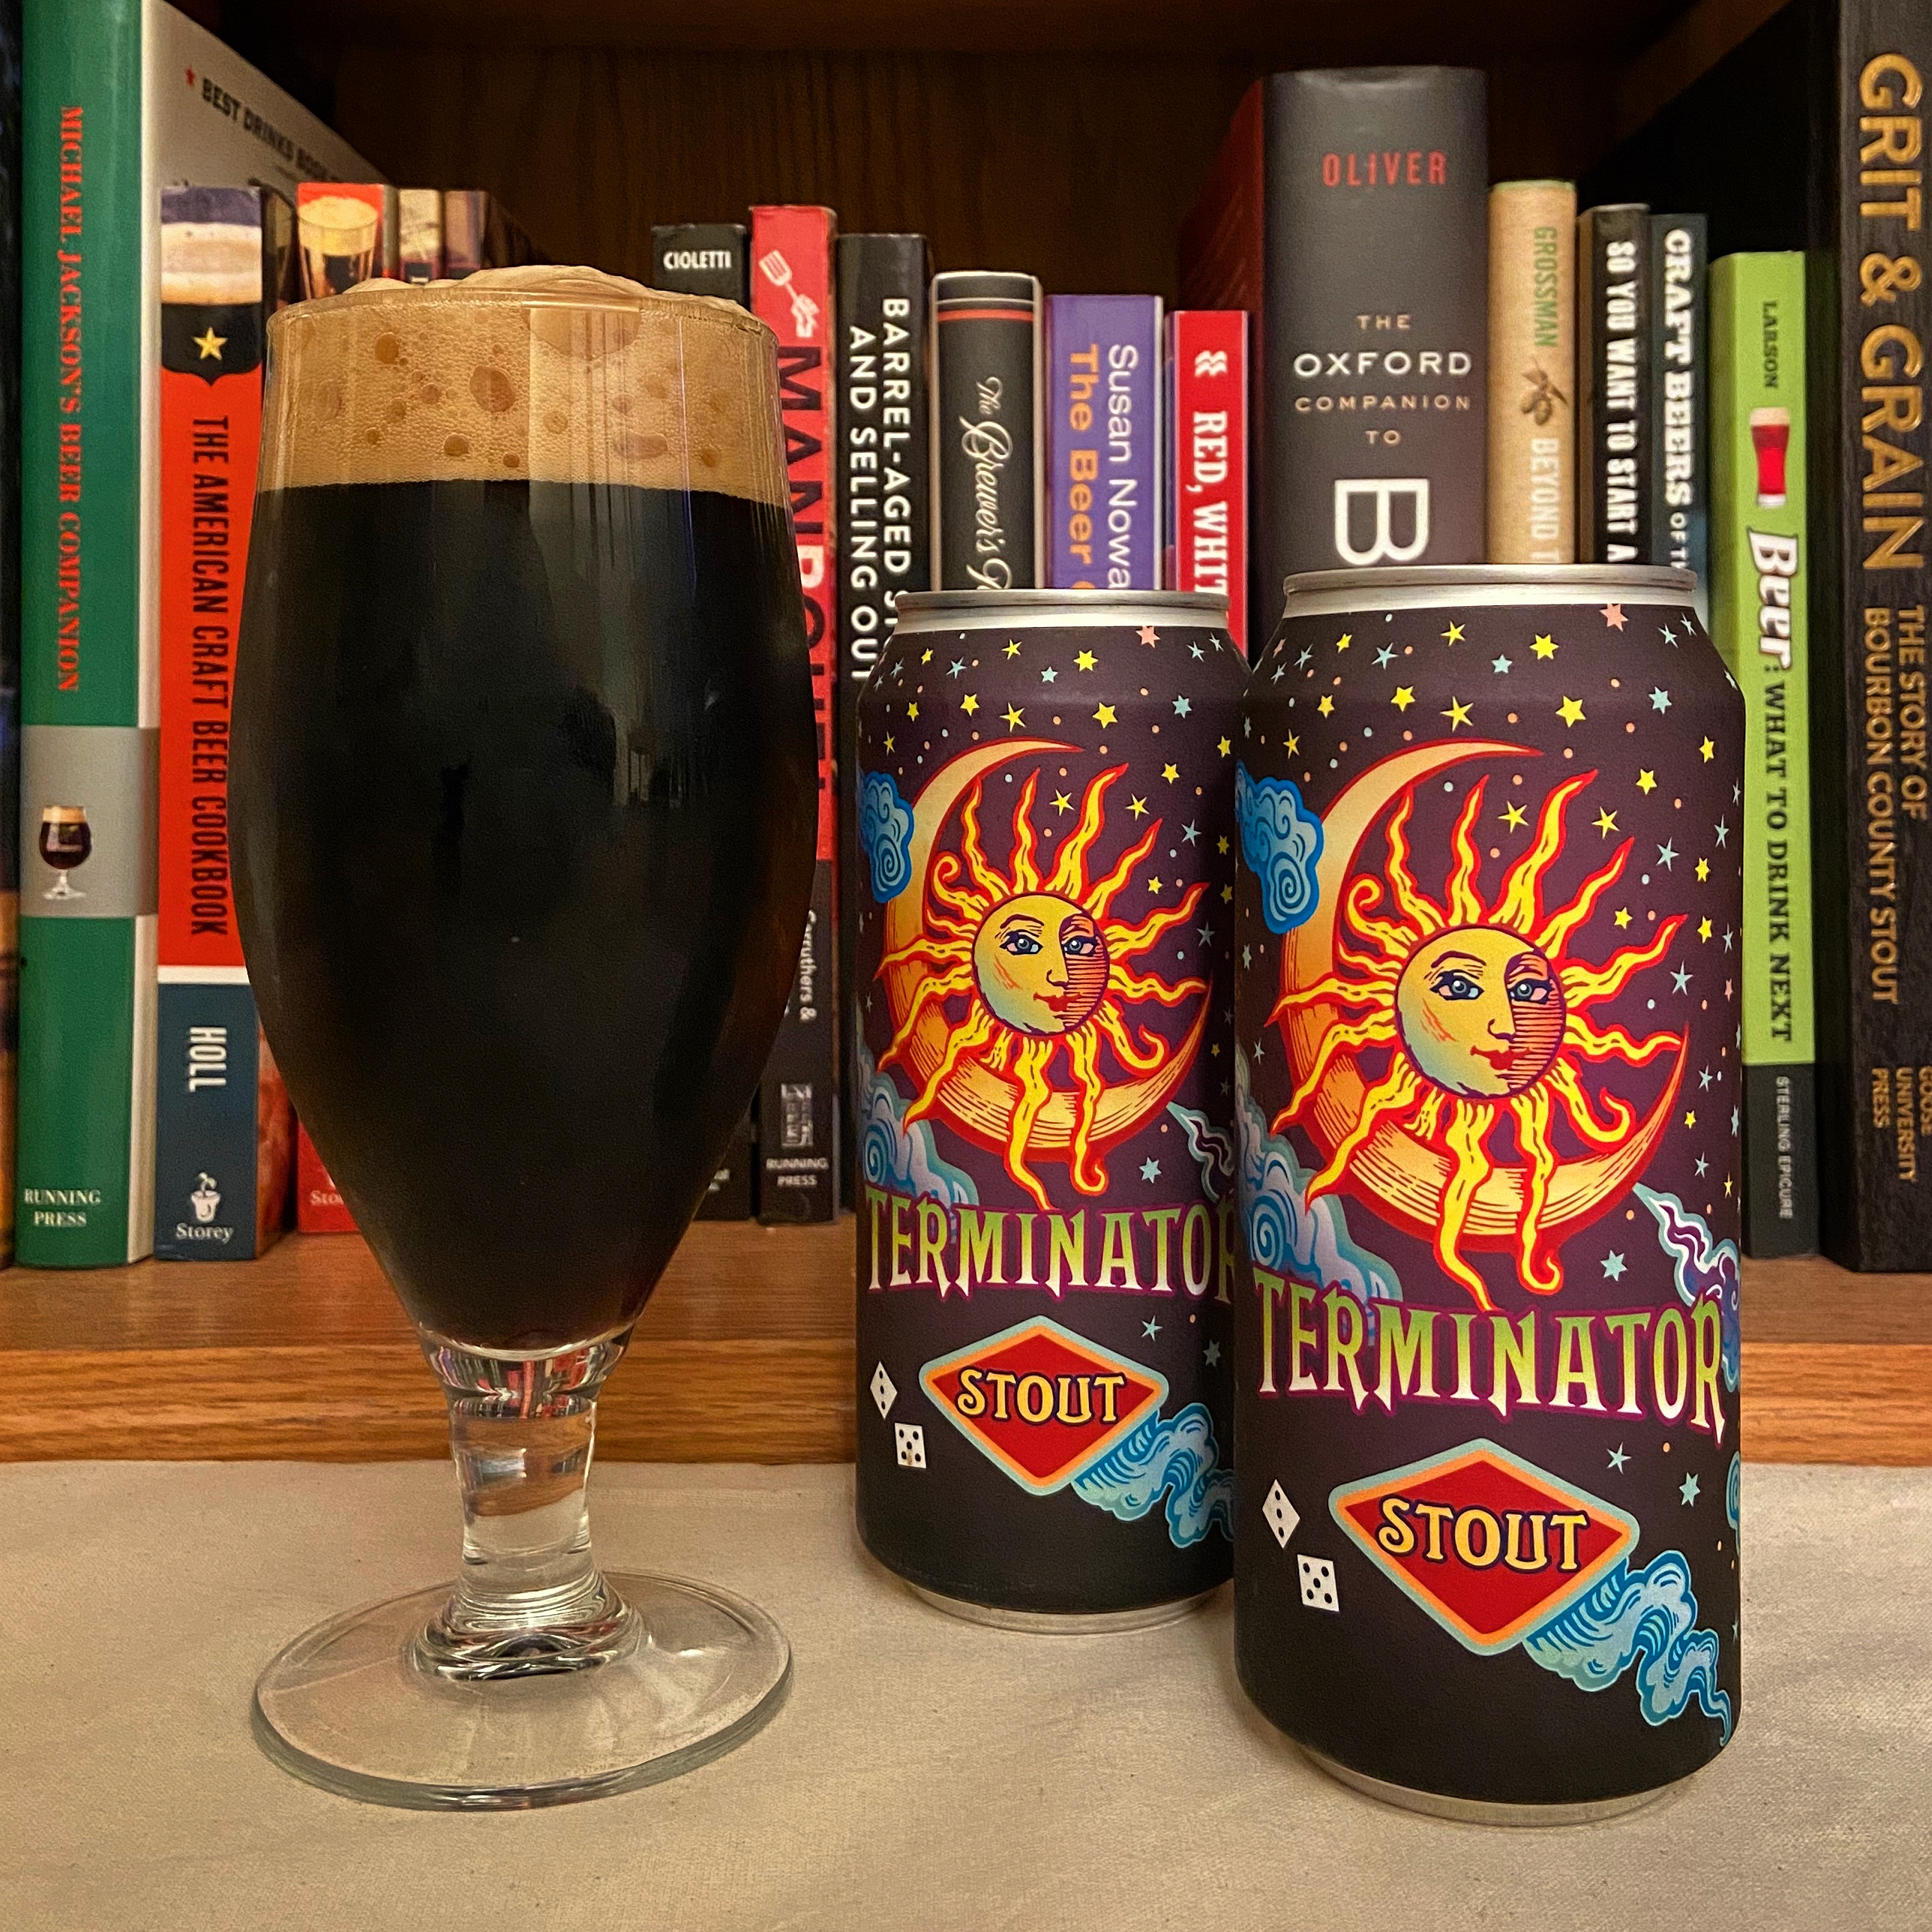 Cans of McMenamins Terminator Stout from its early 2020 can release in anticipation of the beer's 35th anniversary later this year.